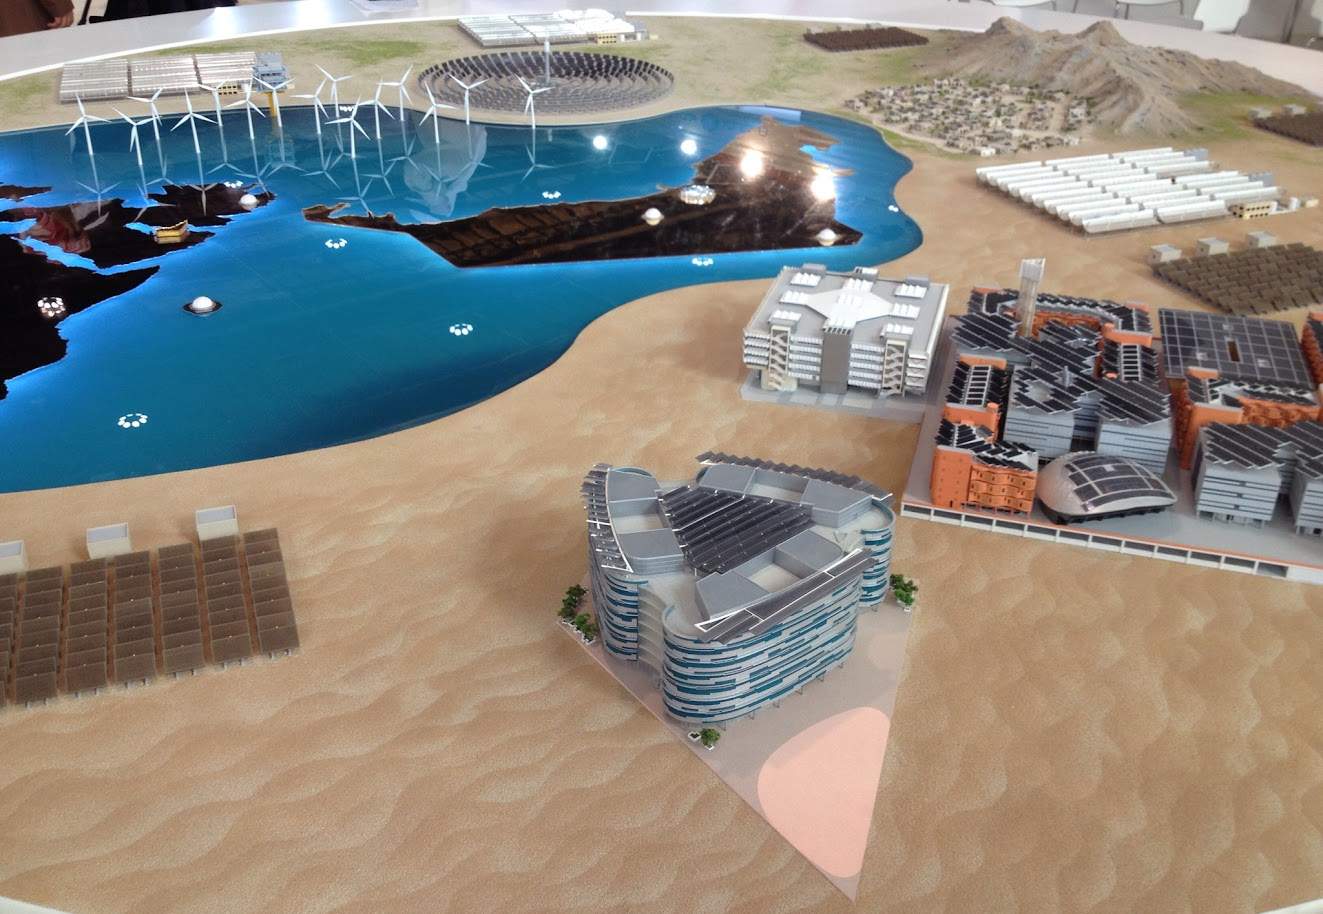 Plan of Masdar City, Abu Dhabi Sustainability Week 2014, Abu Dhabi, UAE